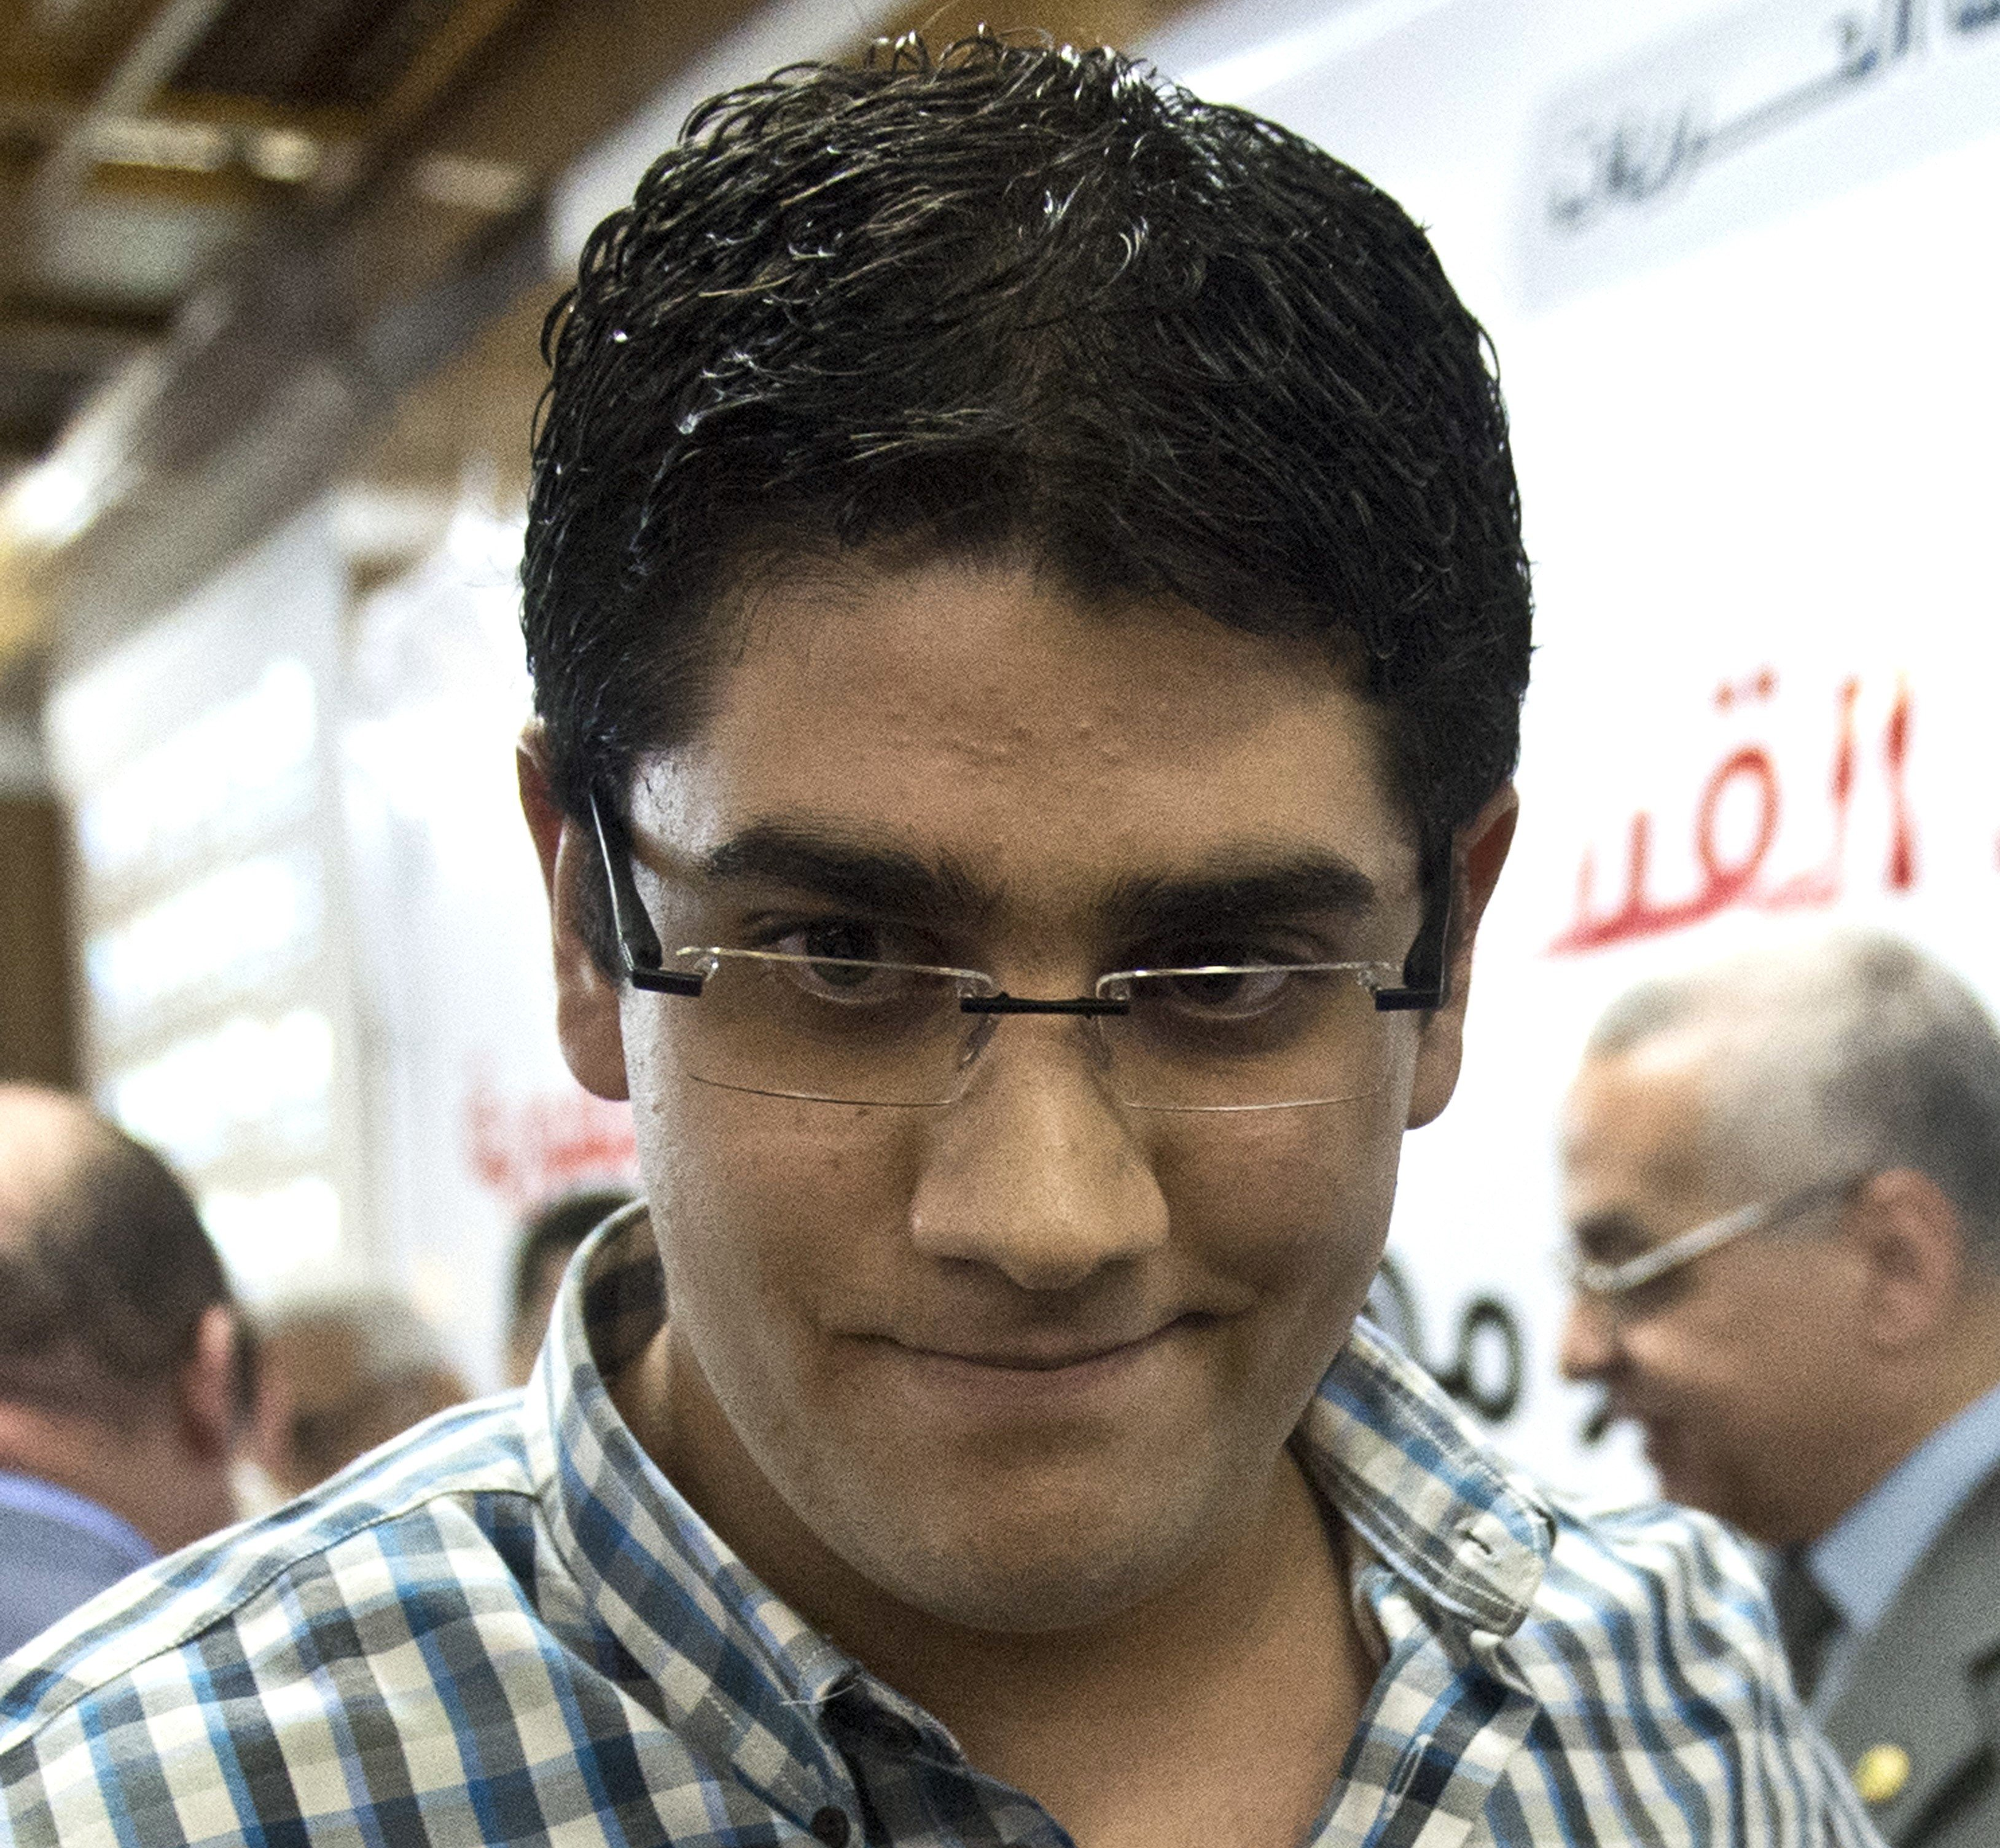 Morsi's youngest son dies in Egypt of heart attack